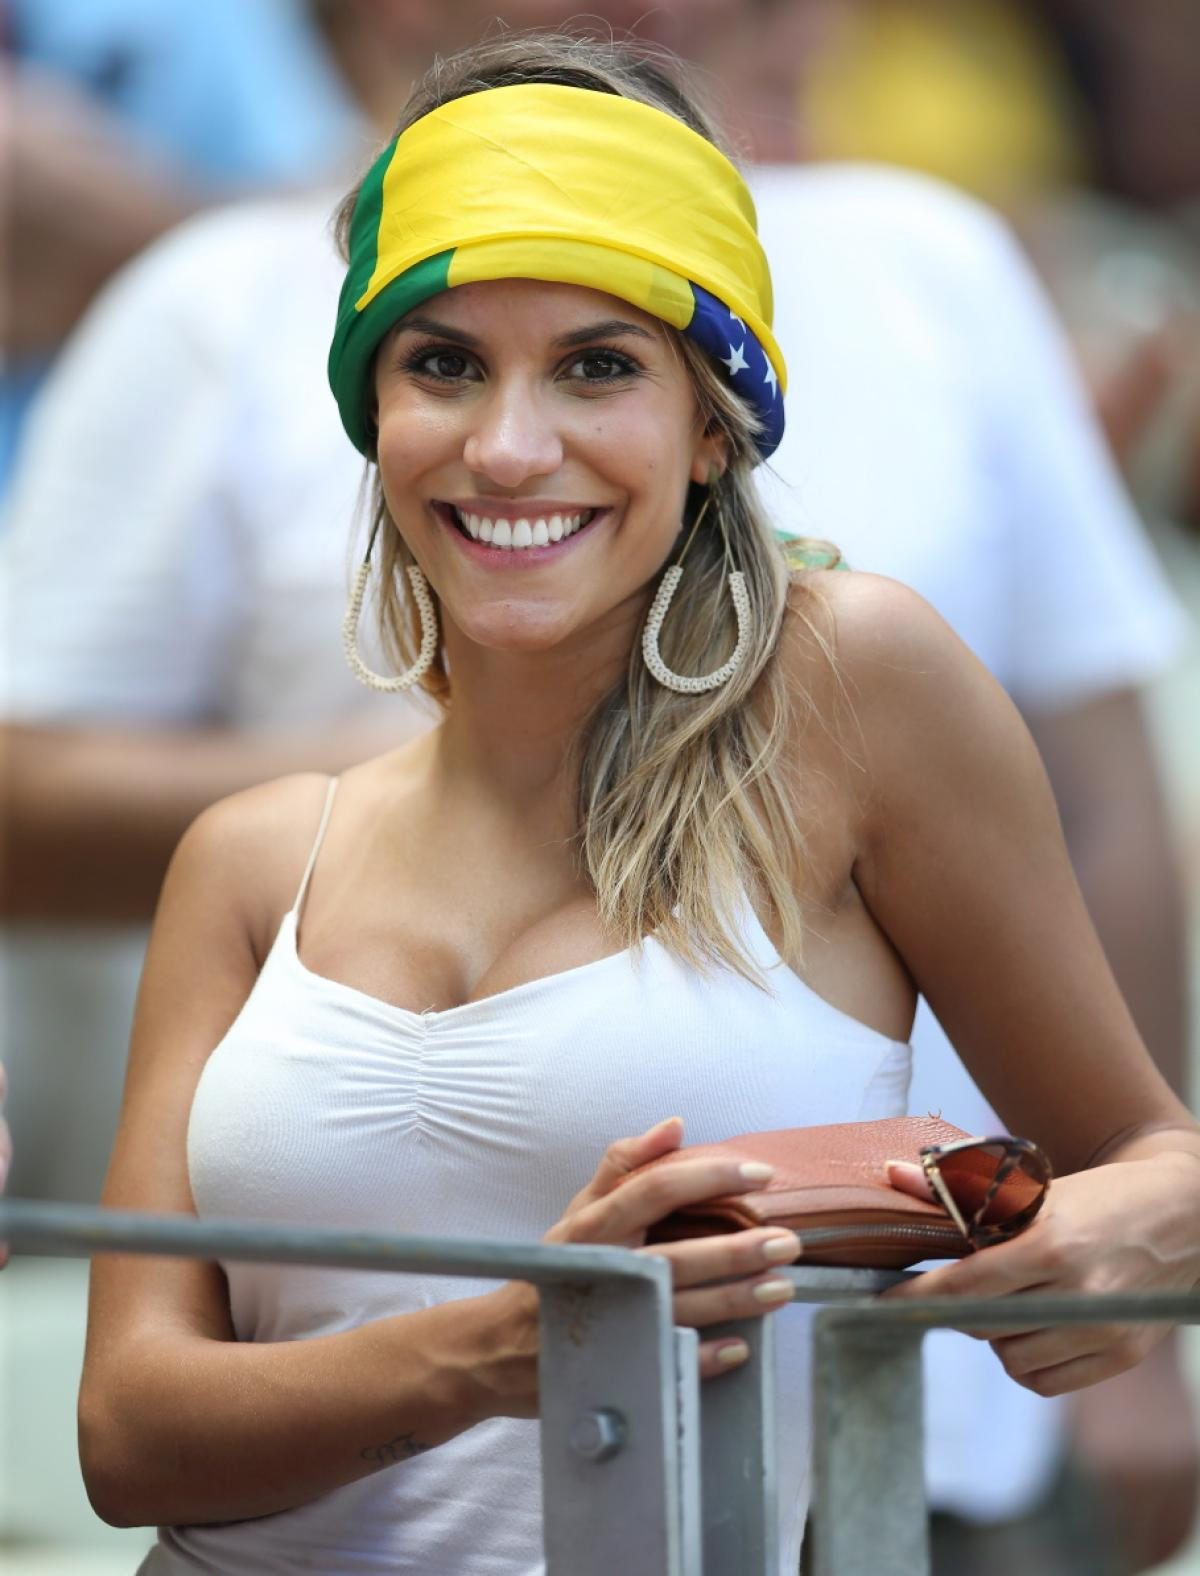 Agree, remarkable hot brazilian fan world cup girl matchless theme